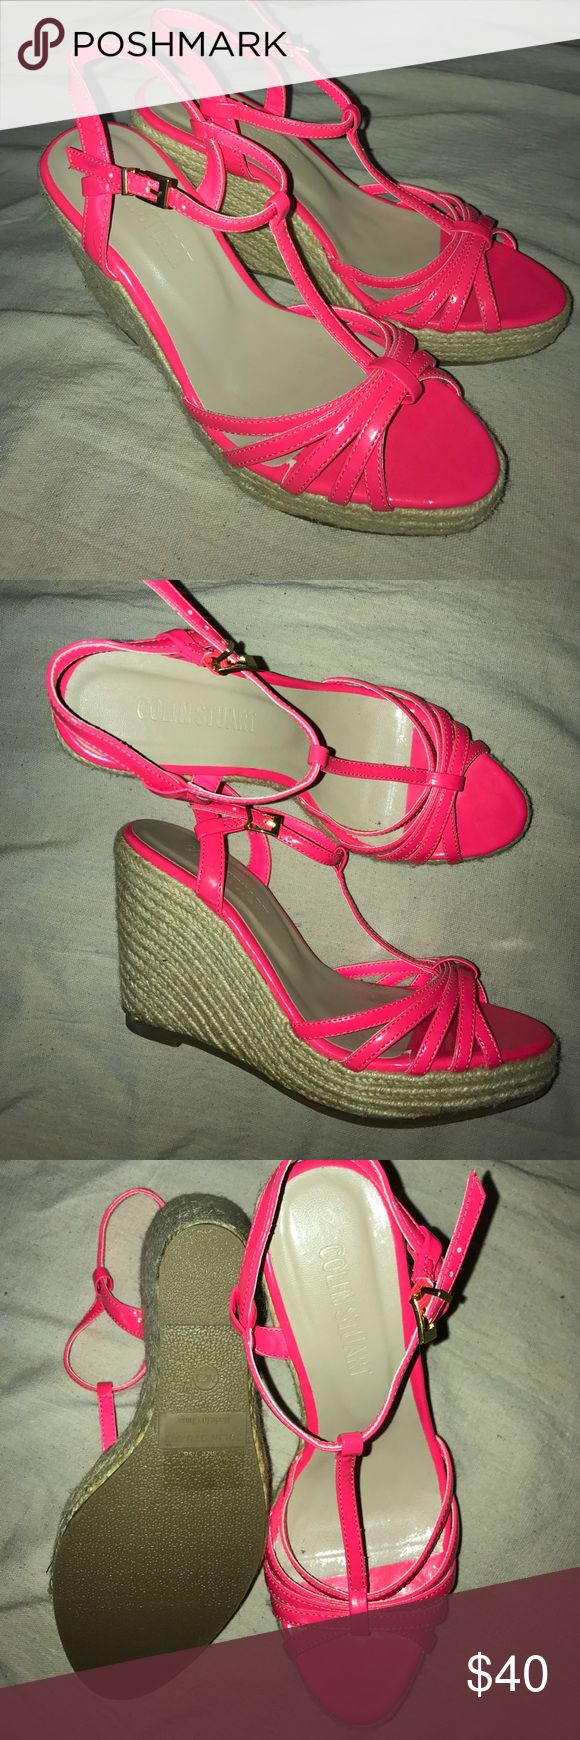 Colin Stuart Neon Pink Wedges Neon Pink Colin Stuart strappy wedges. Patent leather upper and woven wedge. Never worn. Size 7.5 Colin Stuart Shoes Wedges